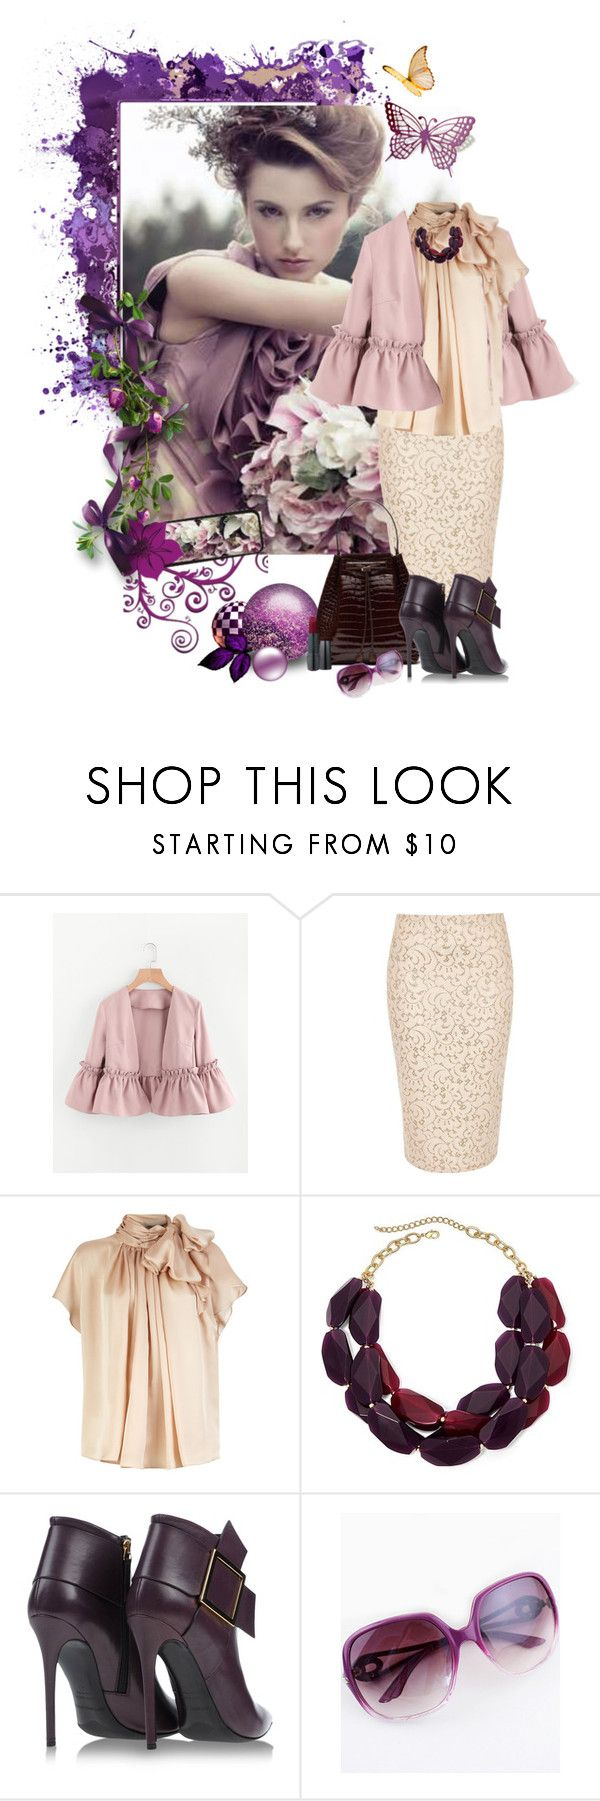 """""""Apricot & Aubergine"""" by fiery555 ❤ liked on Polyvore featuring River Island, Gianmarco Lorenzi, Summer, violet, summeroutfit, apricot and aubergine"""